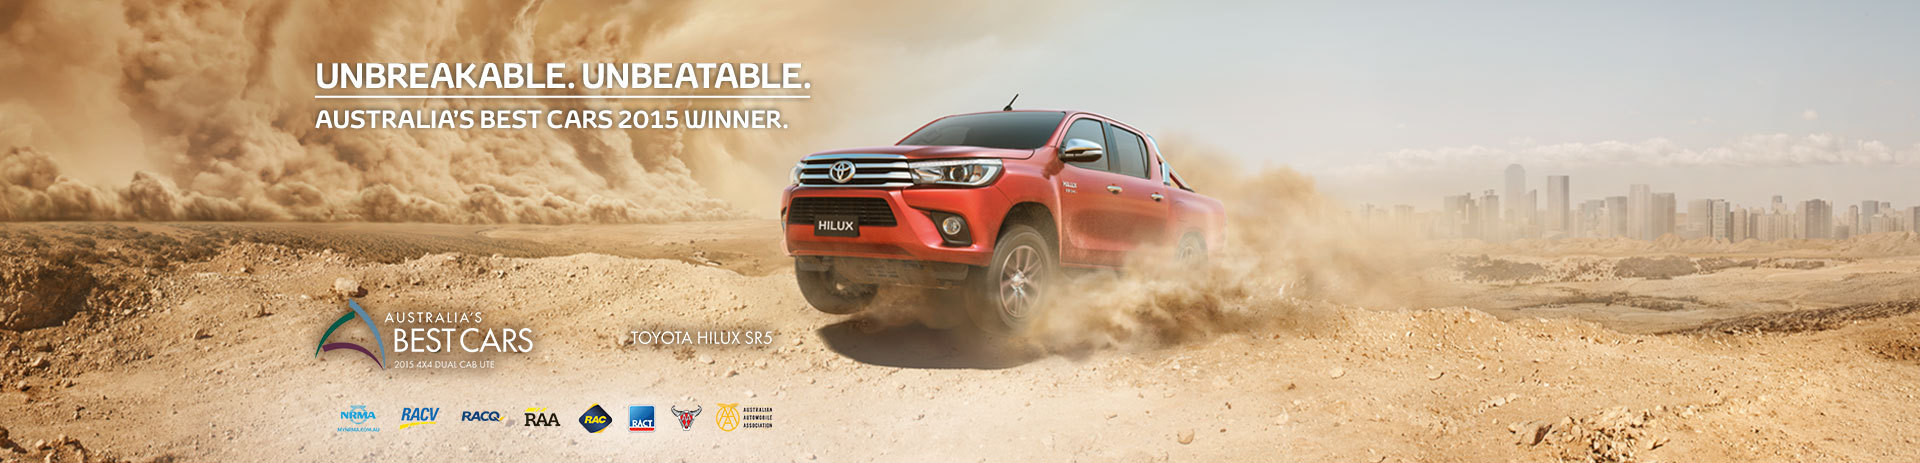 Hilux SR5 Australia's Best Car Award